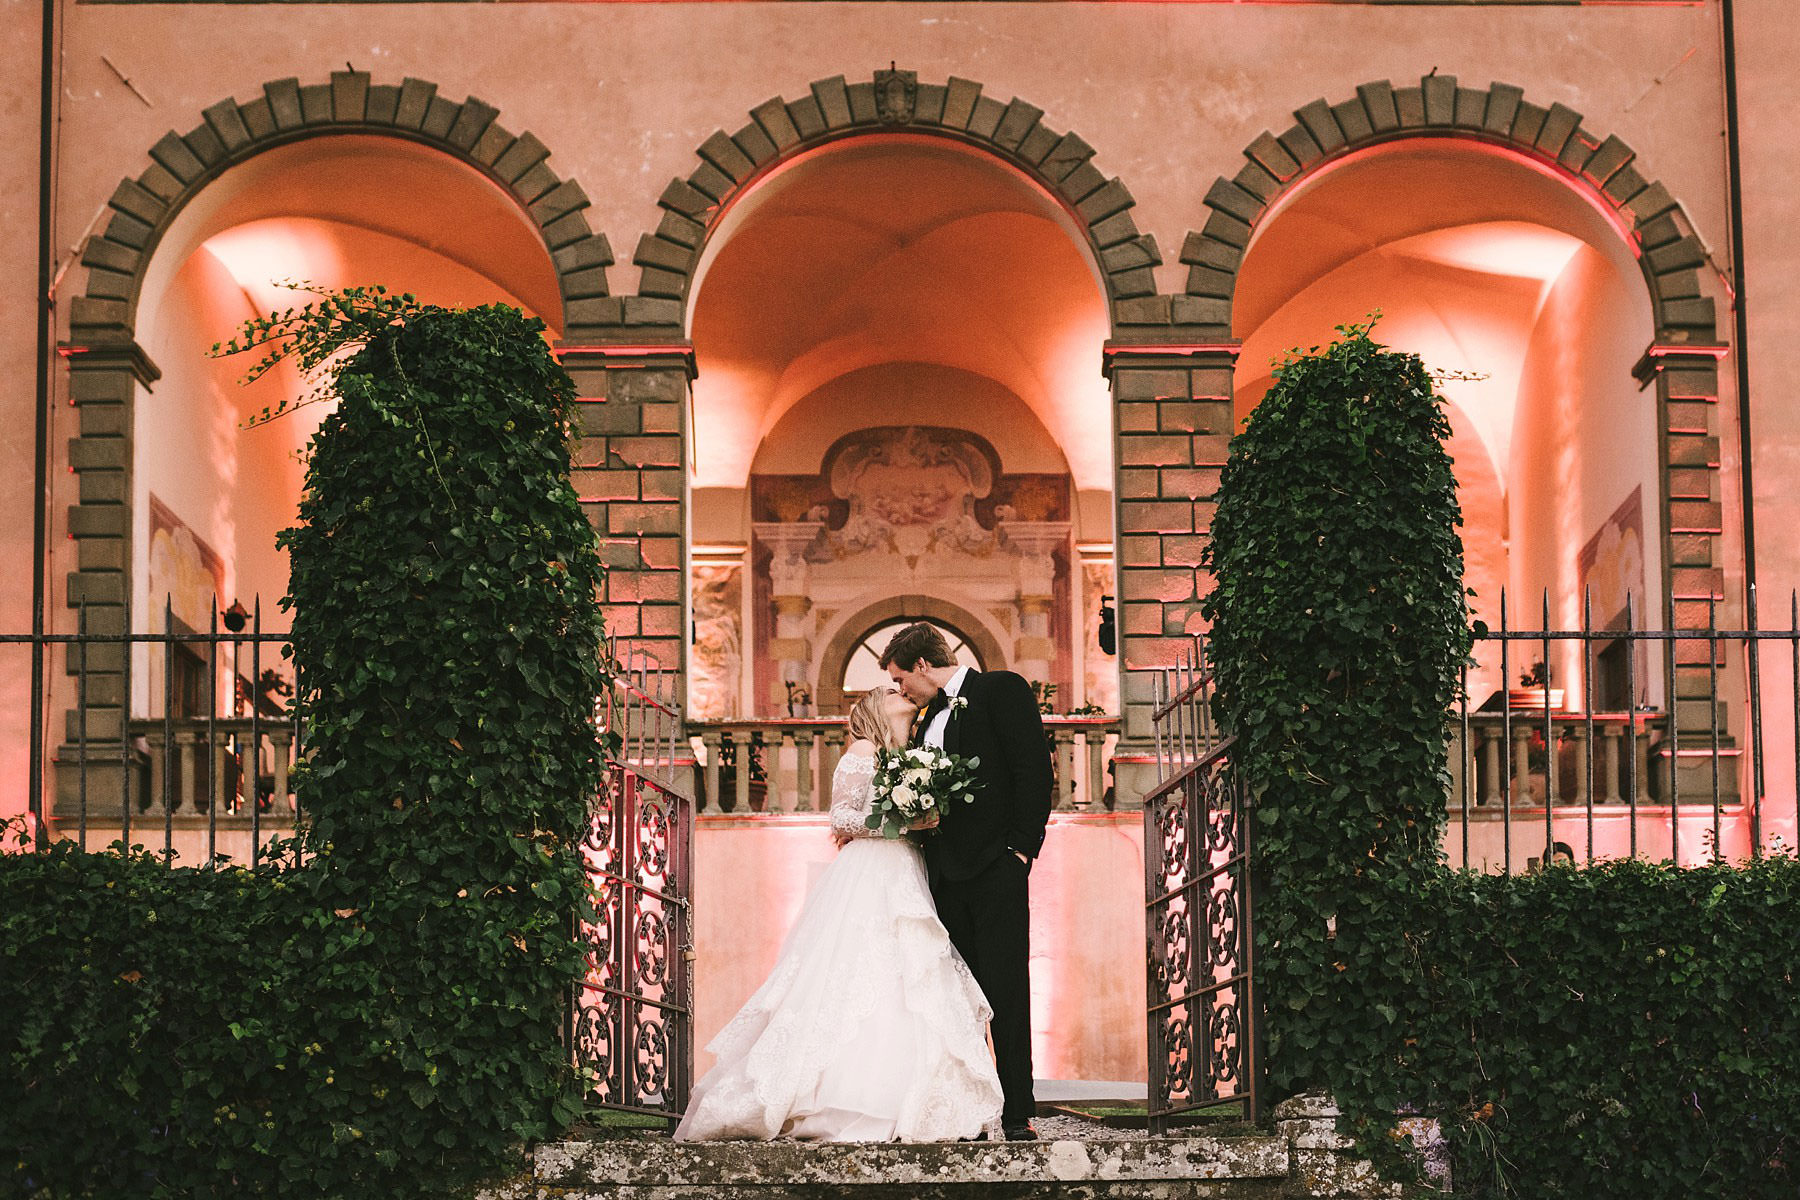 Bride and groom wedding photo at Villa Mangiacane in Chianti area in Tuscany